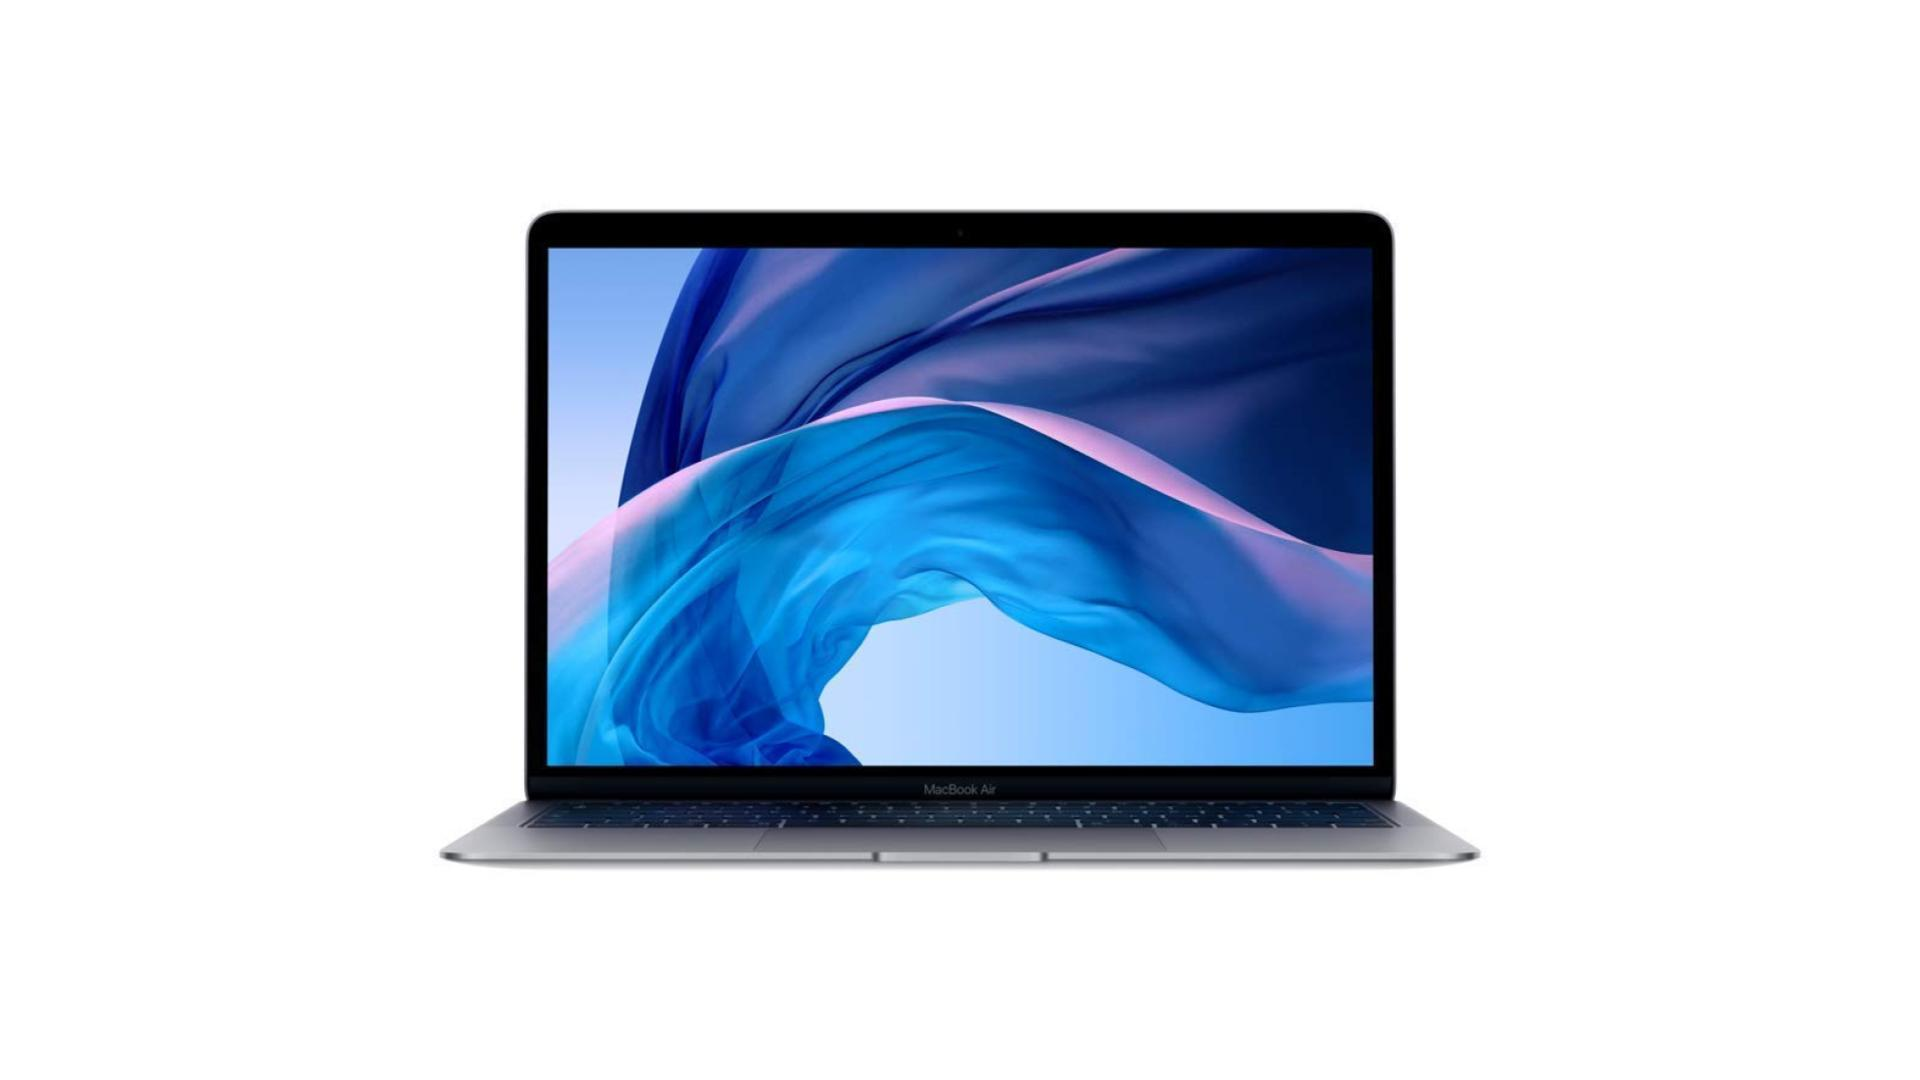 🔥 Soldes 2019 : le MacBook Air Retina 2018 à 1099 euros